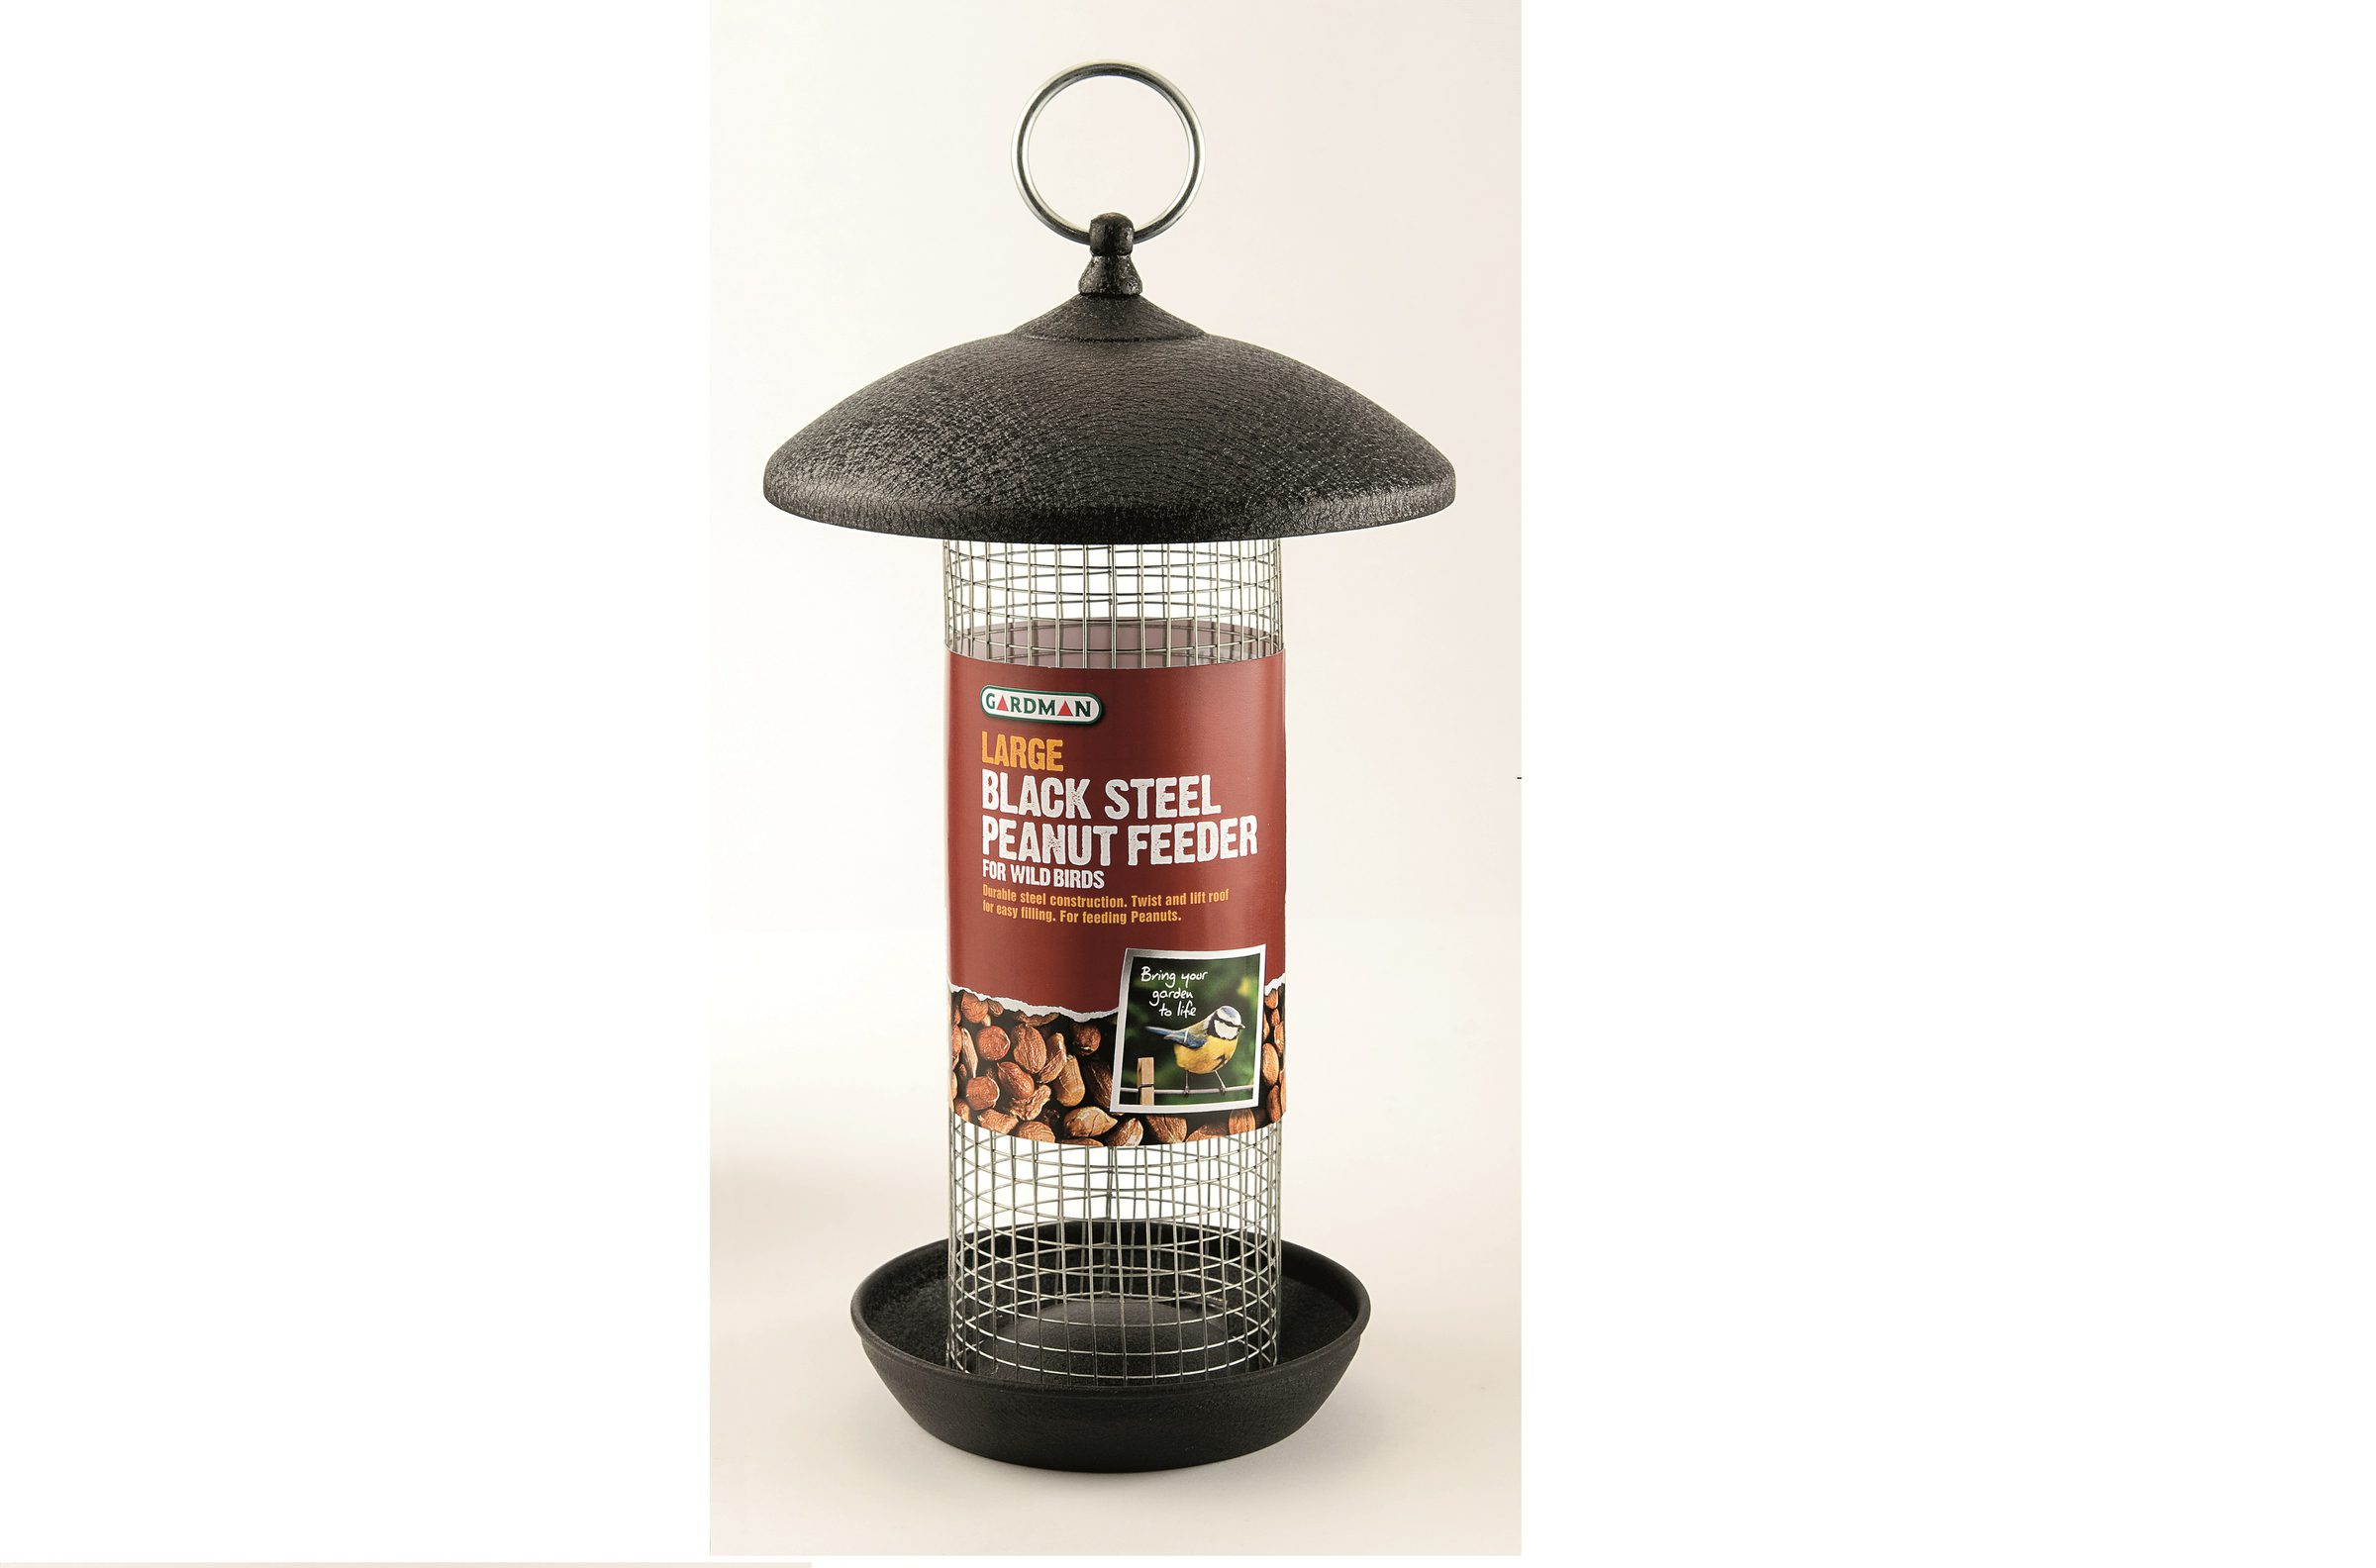 Large Black Steel Peanut Feeder